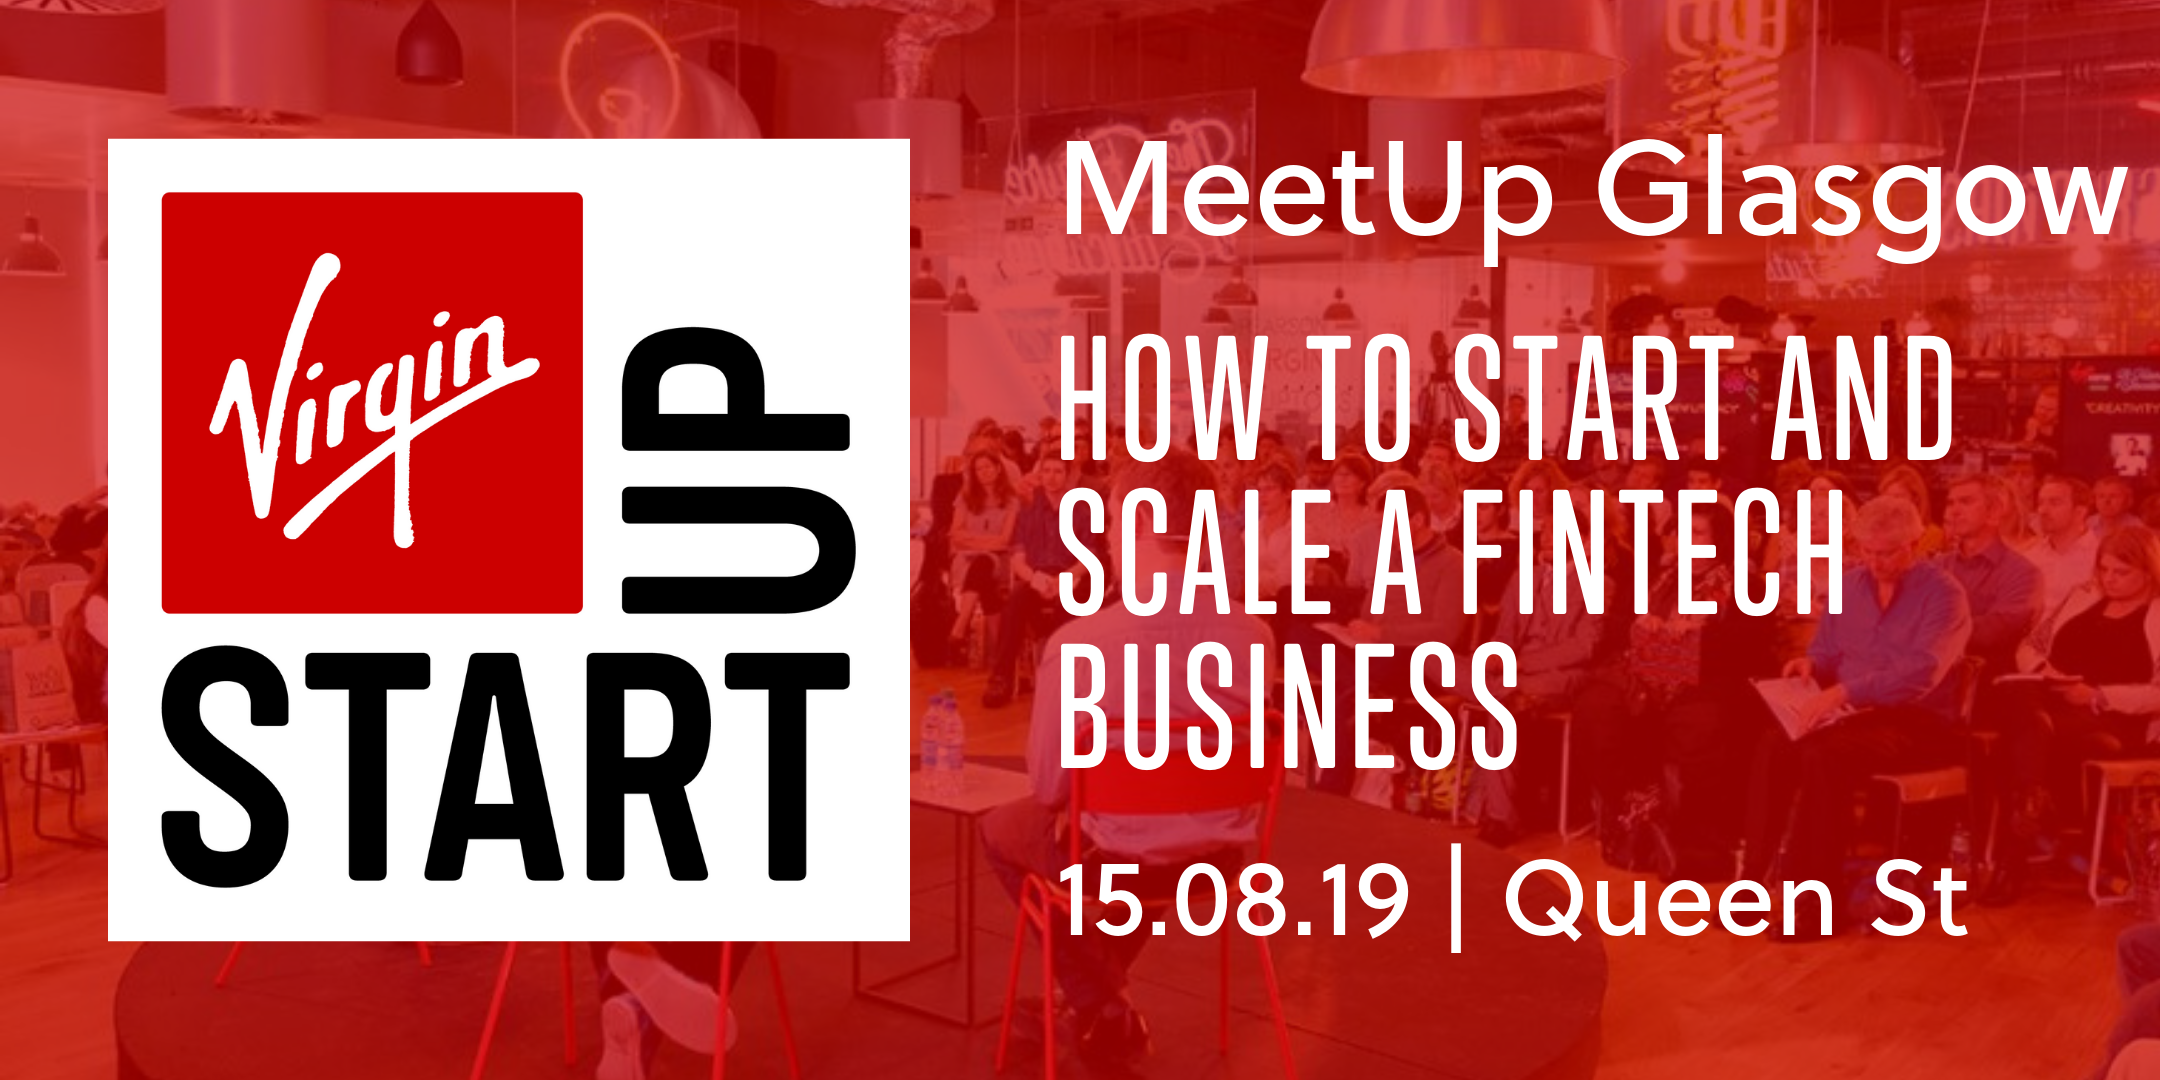 Virgin StartUp MeetUp Glasgow: Start and scale a FinTech business in 2019